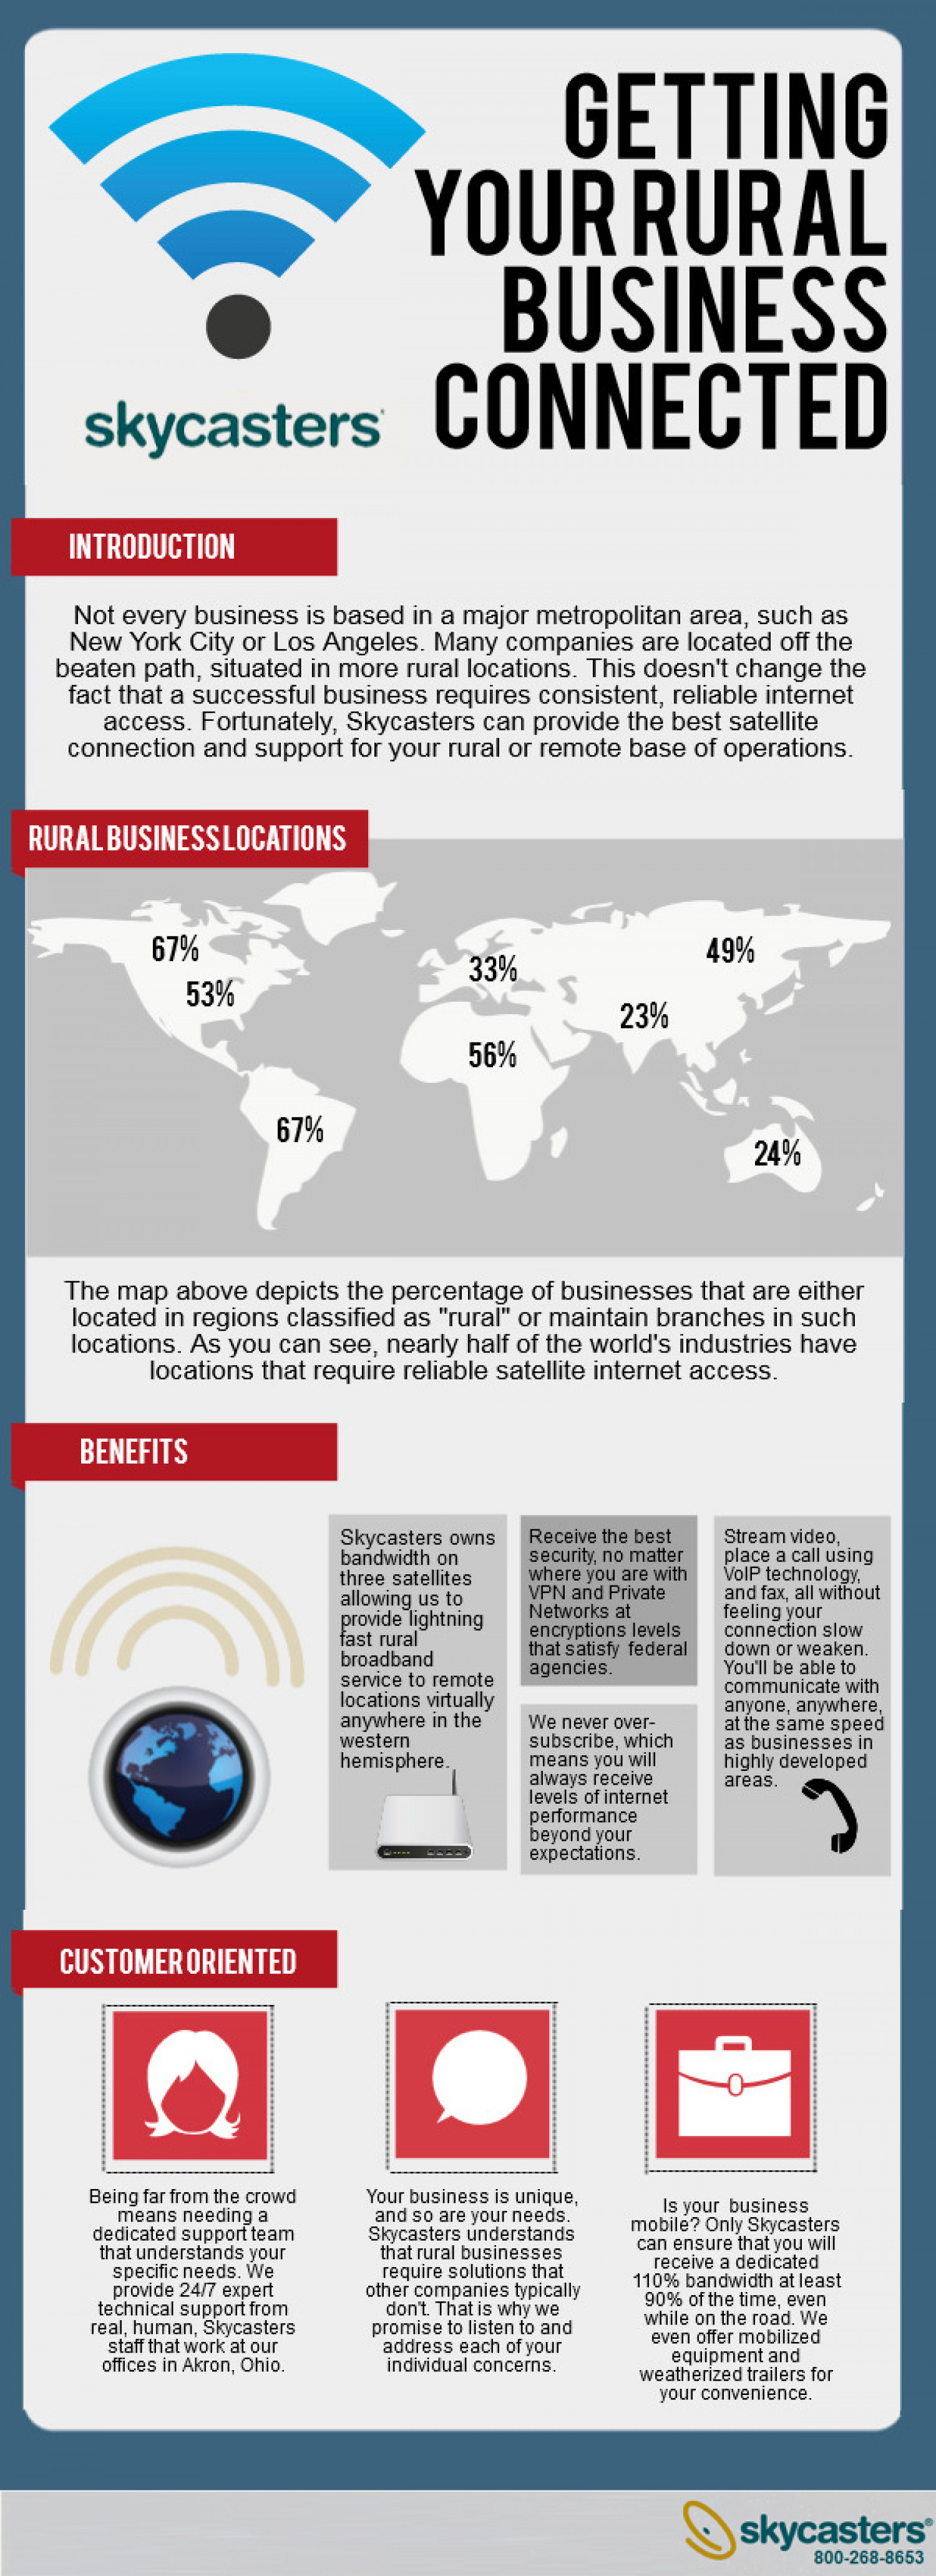 Getting Your Rural Business Connected Infographic